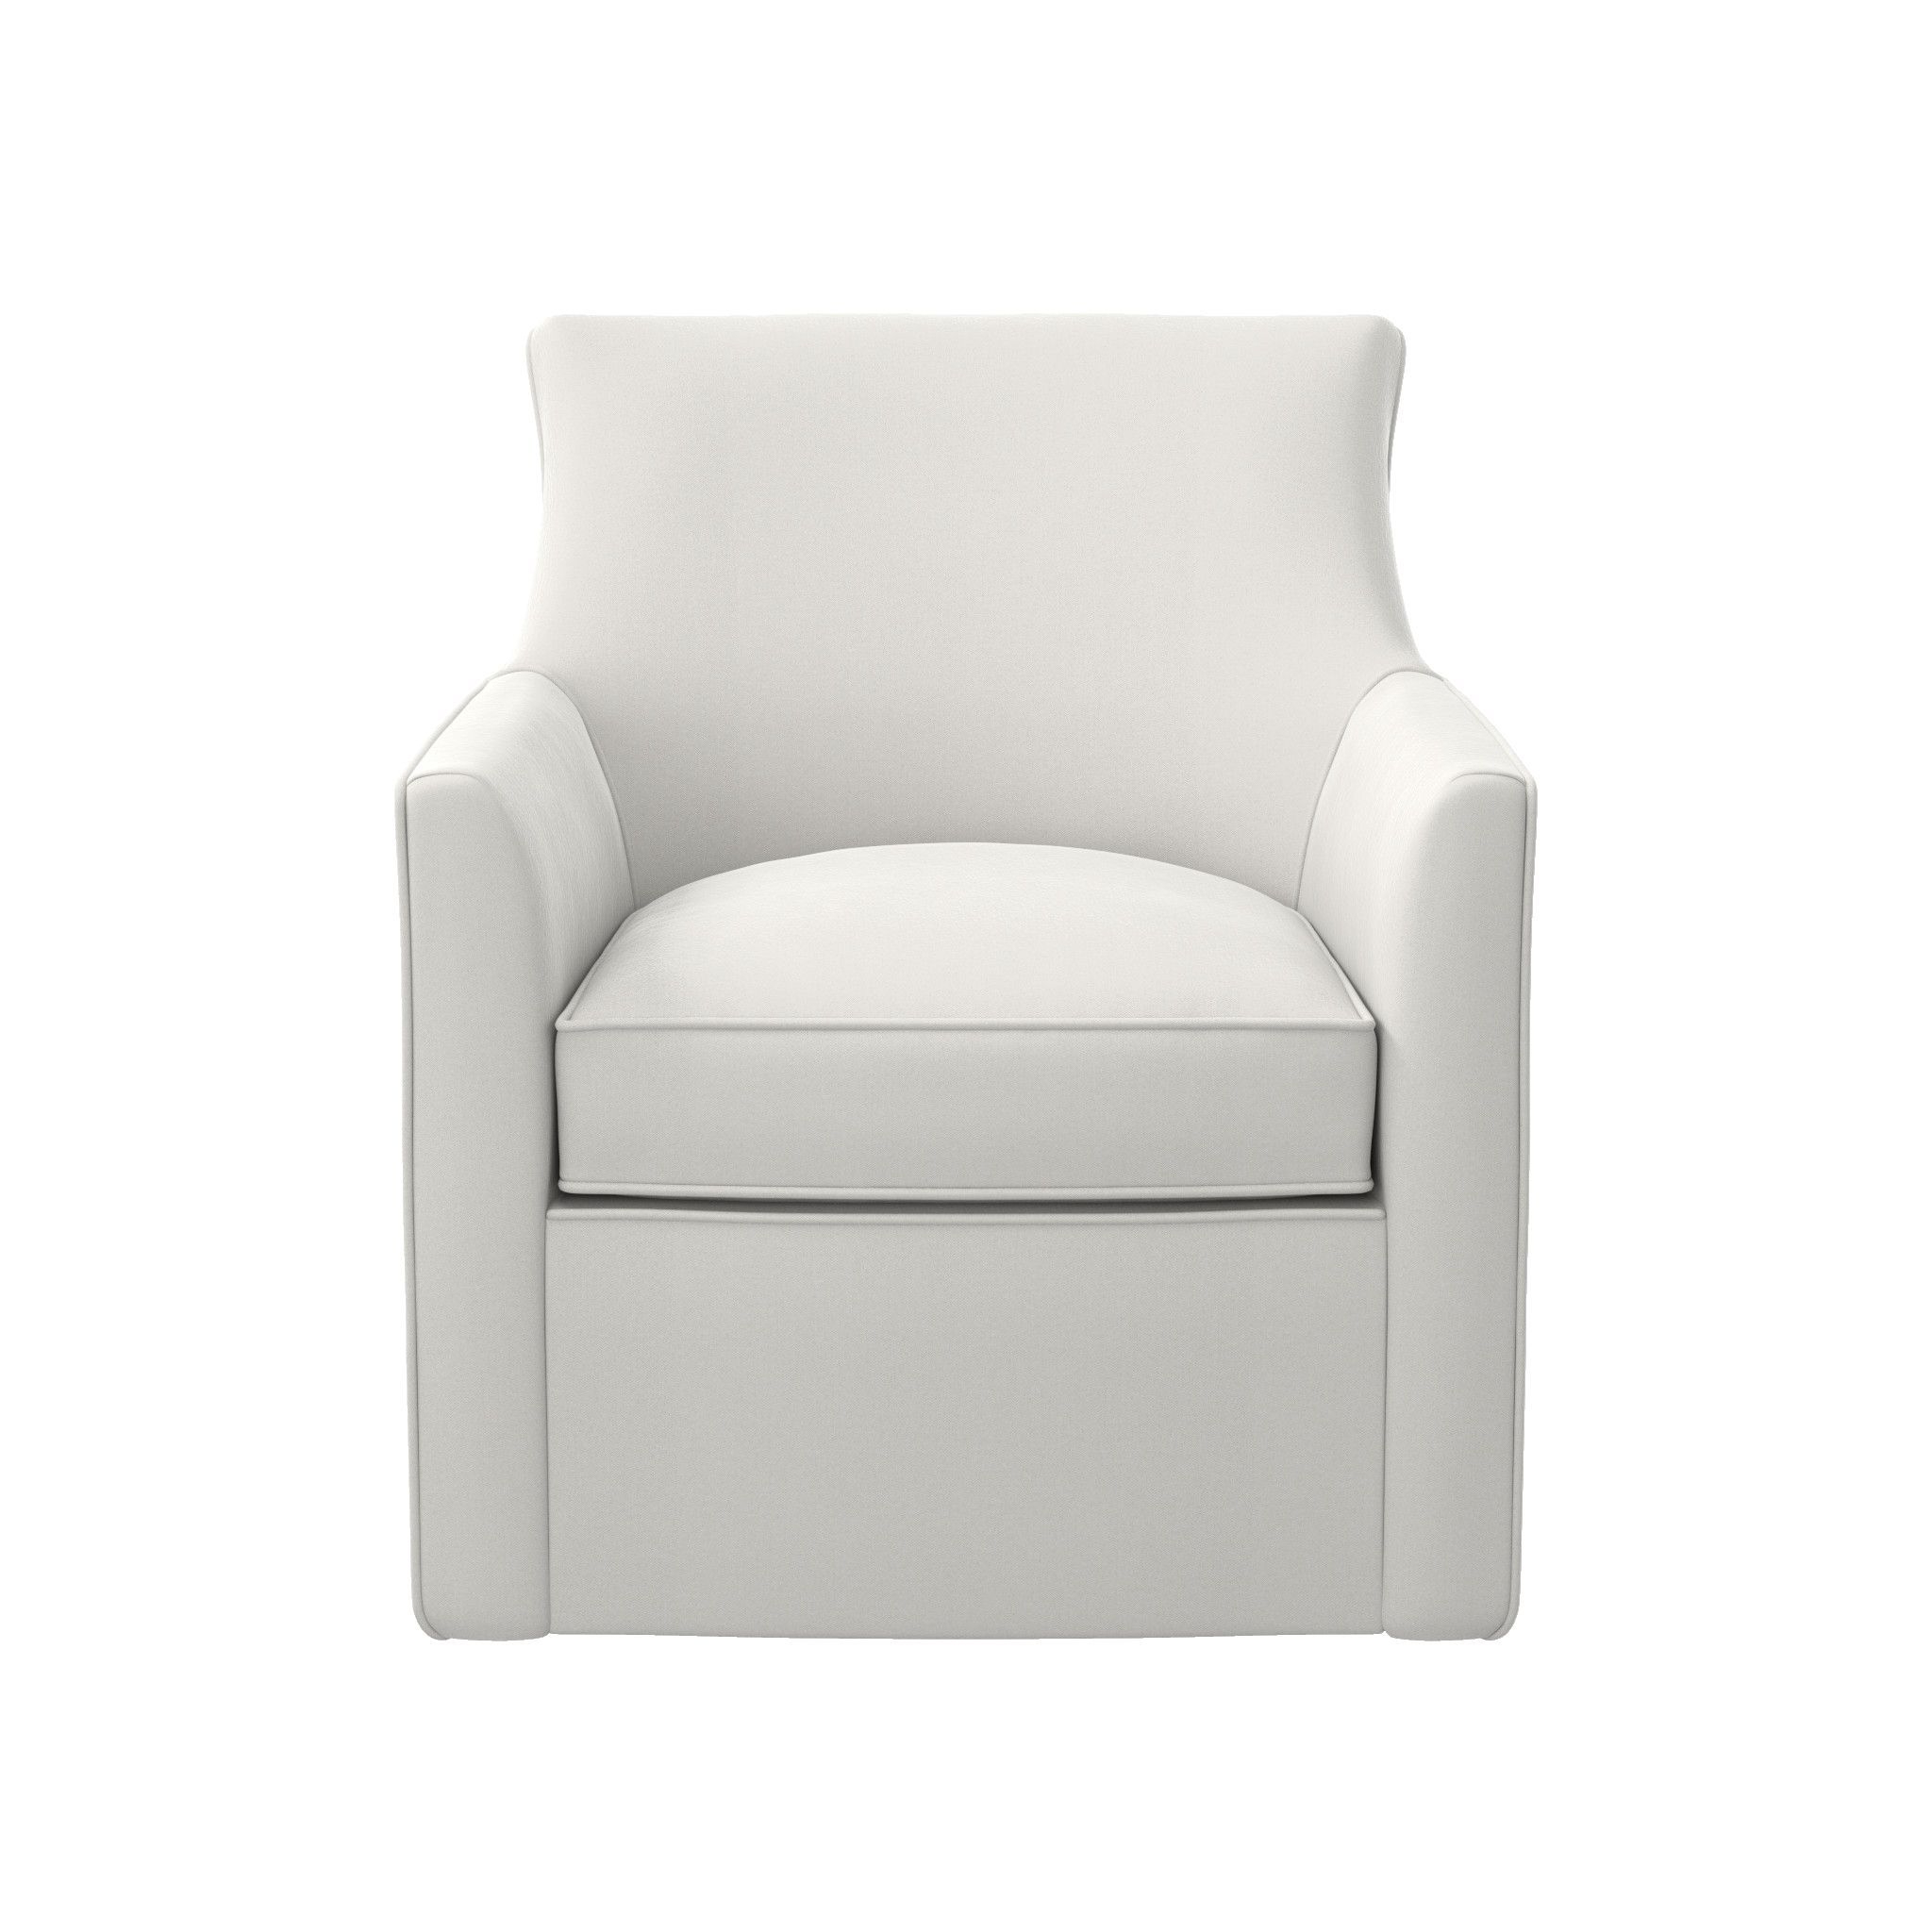 2019 Aidan Ii Swivel Accent Chairs With Shop Clara Swivel Chair. Postured For A More Upright Experience, The (Gallery 14 of 20)